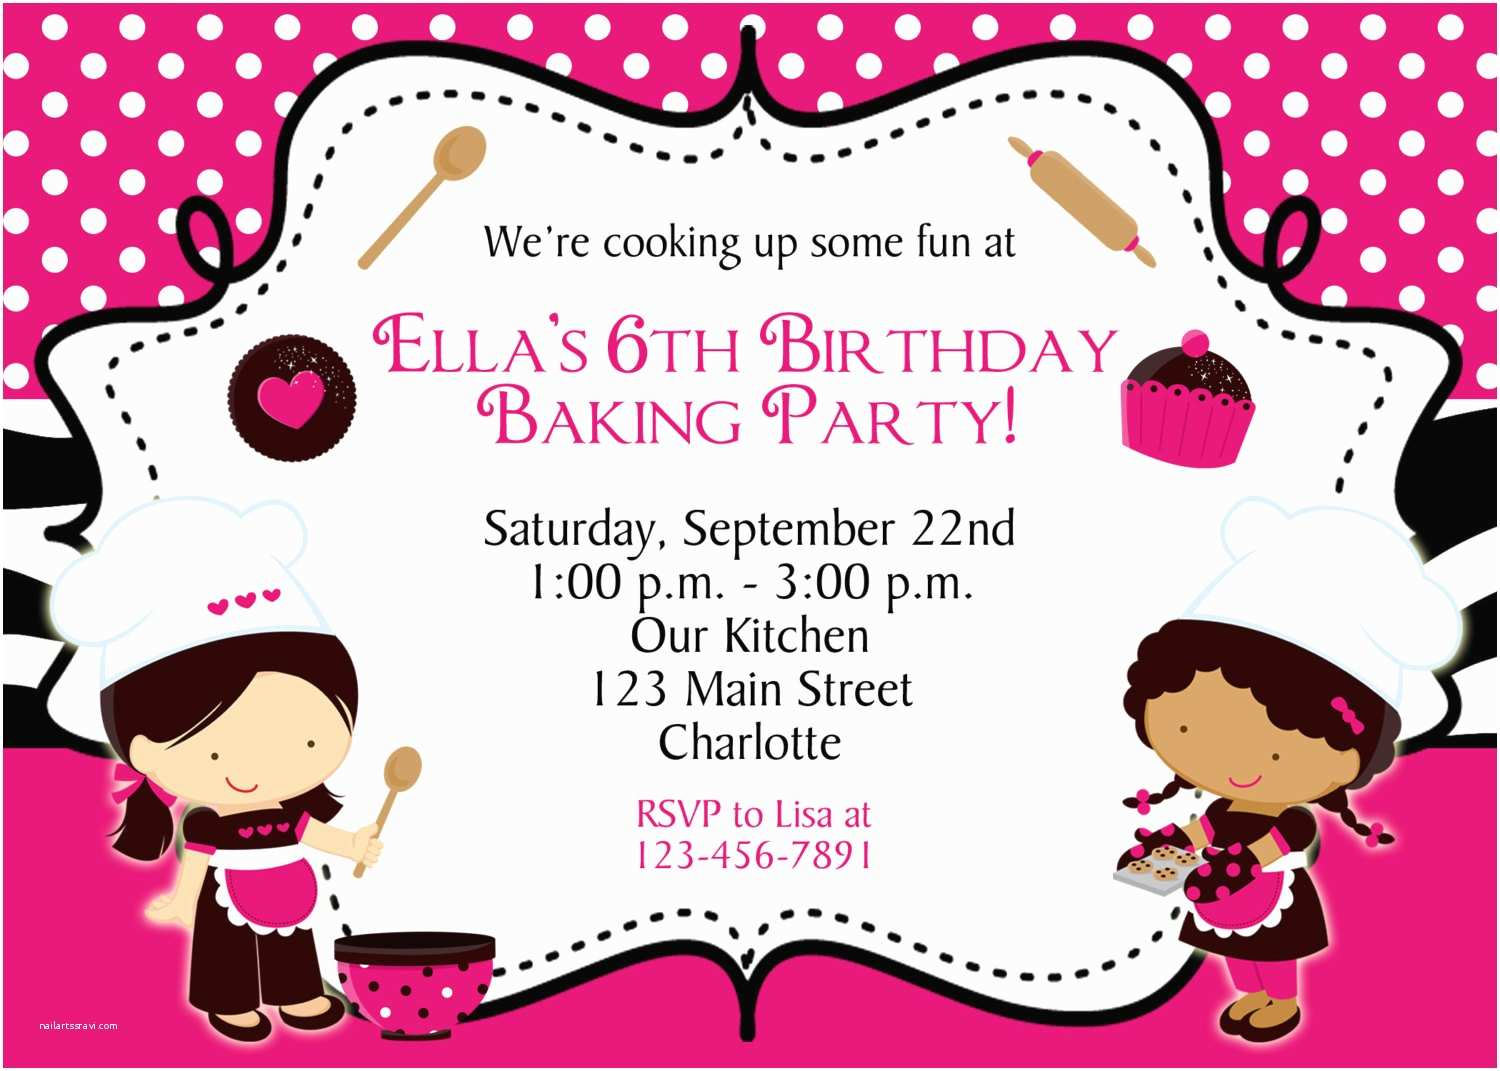 Cooking Party Invitations Cooking Birthday Party Invitation Baking by thebutterflypress